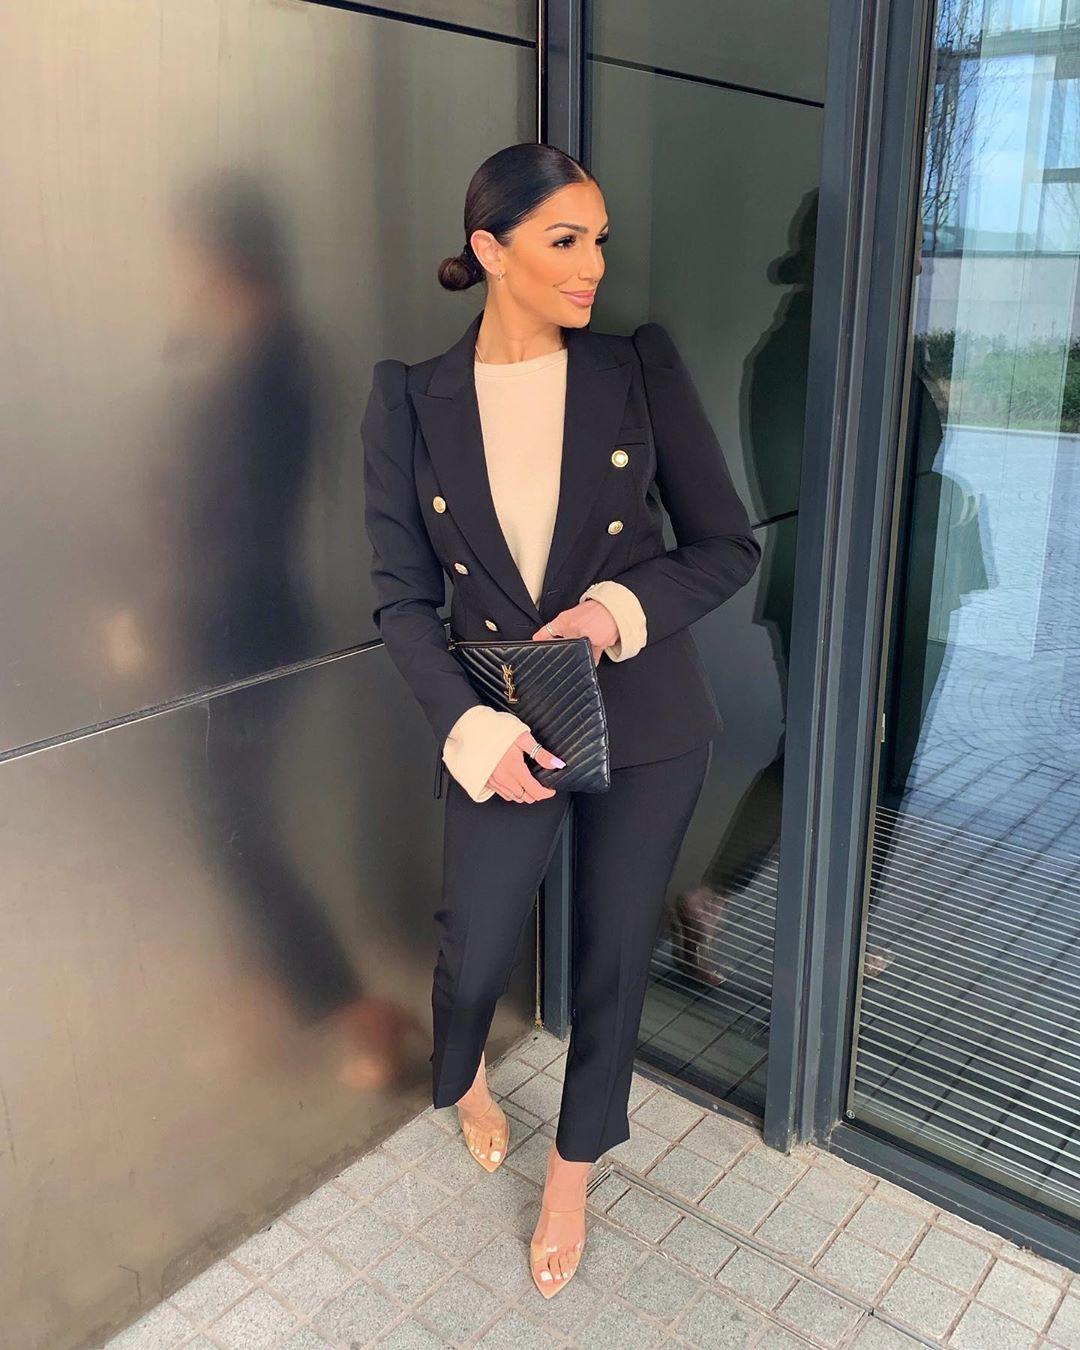 Katerina Themis ? formal wear, pantsuit, tuxedo outfits for girls